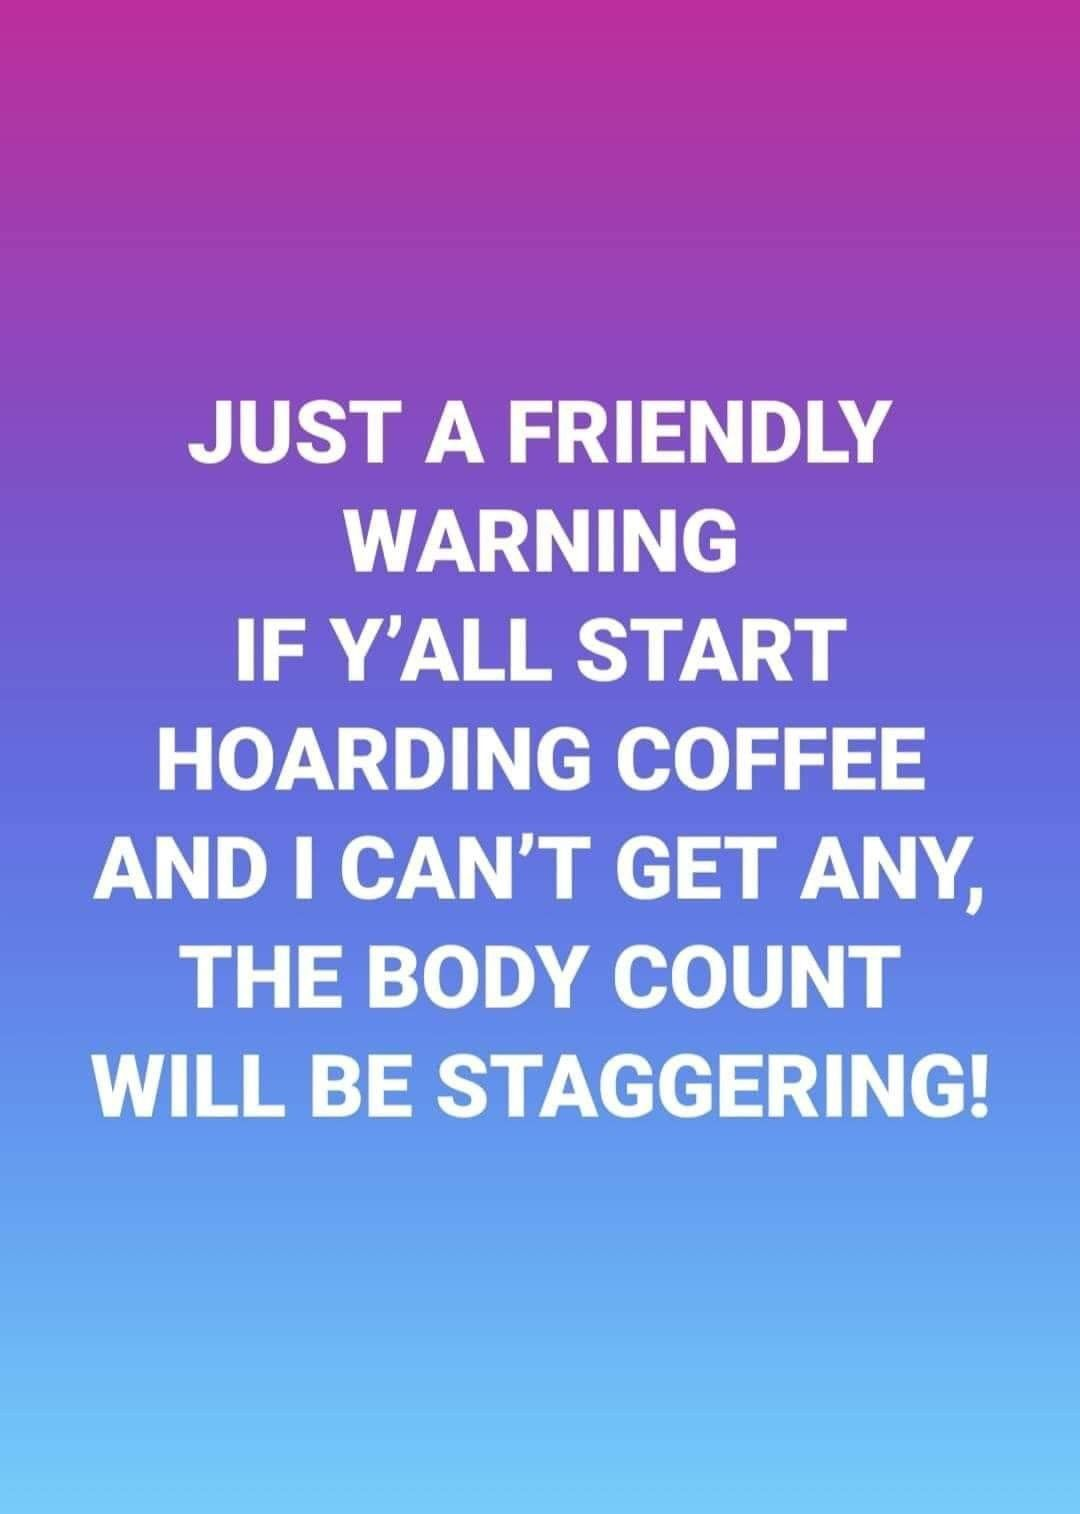 Pin By Maria Salazar On Coffee In 2020 Coffee Humor Coffee Quotes Funny Quotes